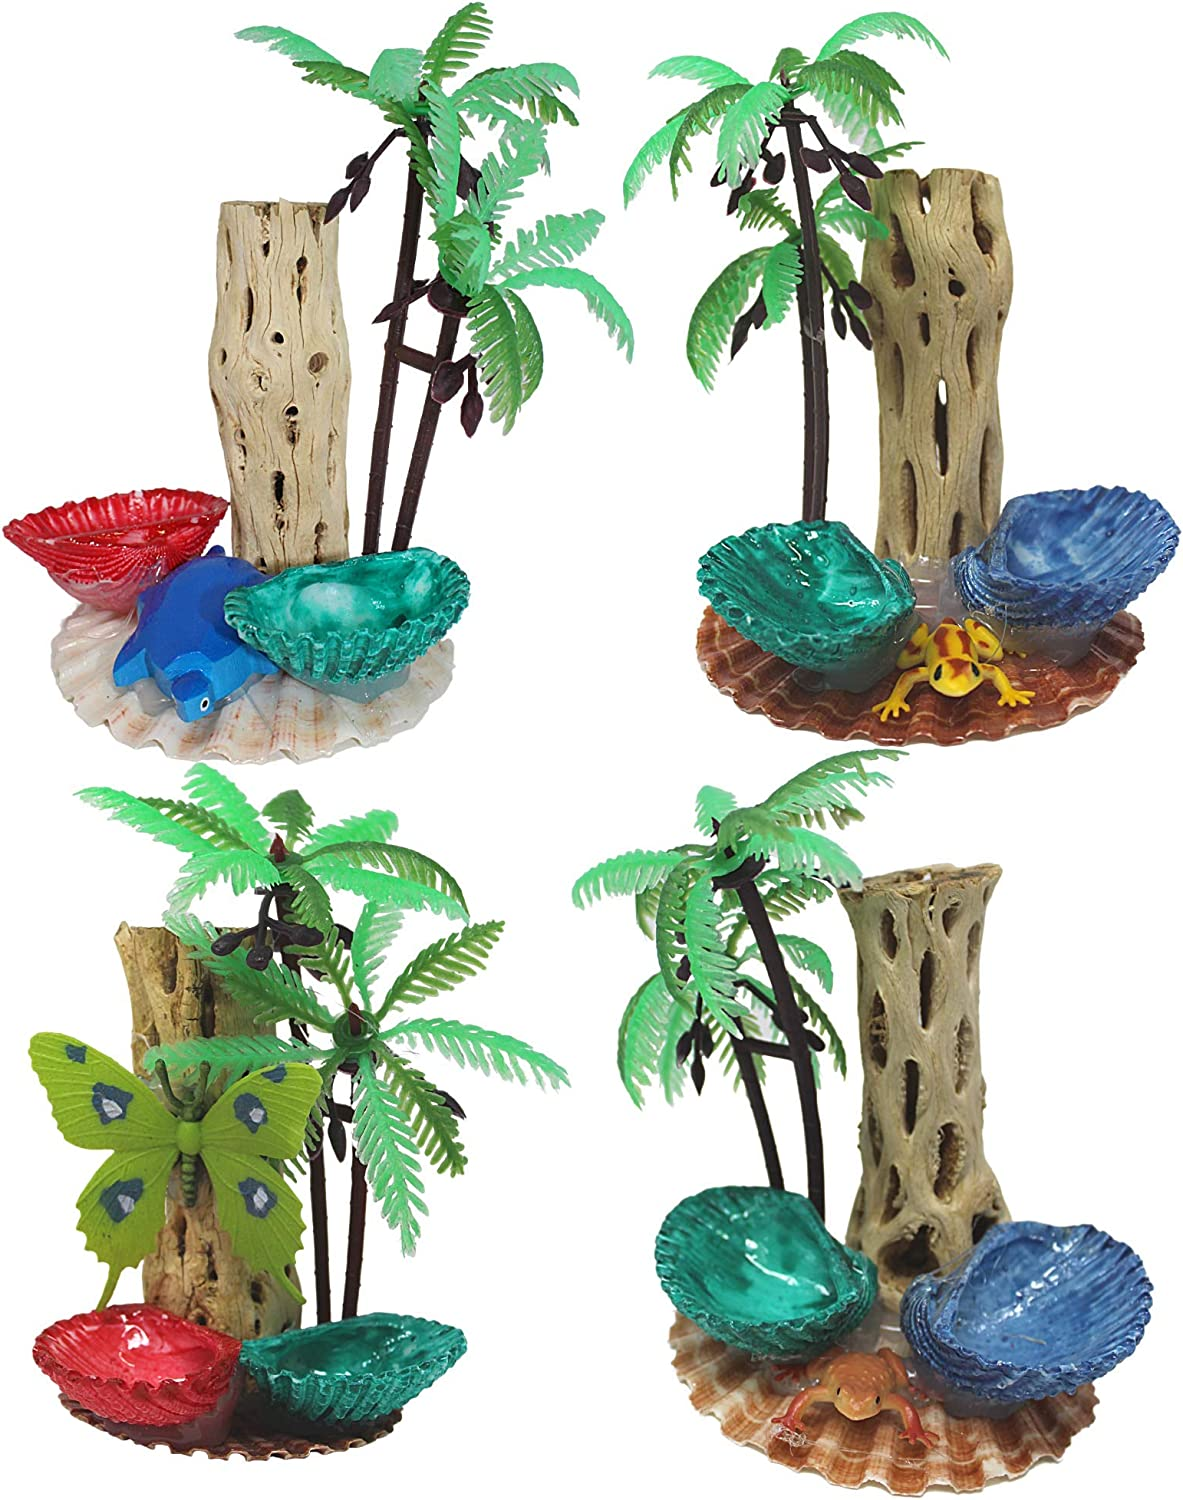 Needzo Hermit Crab Habitat Centerpiece Decoration with Palm Trees, Food and Water Shells, Bulk Reptile Tank Accessory, Pack of 4